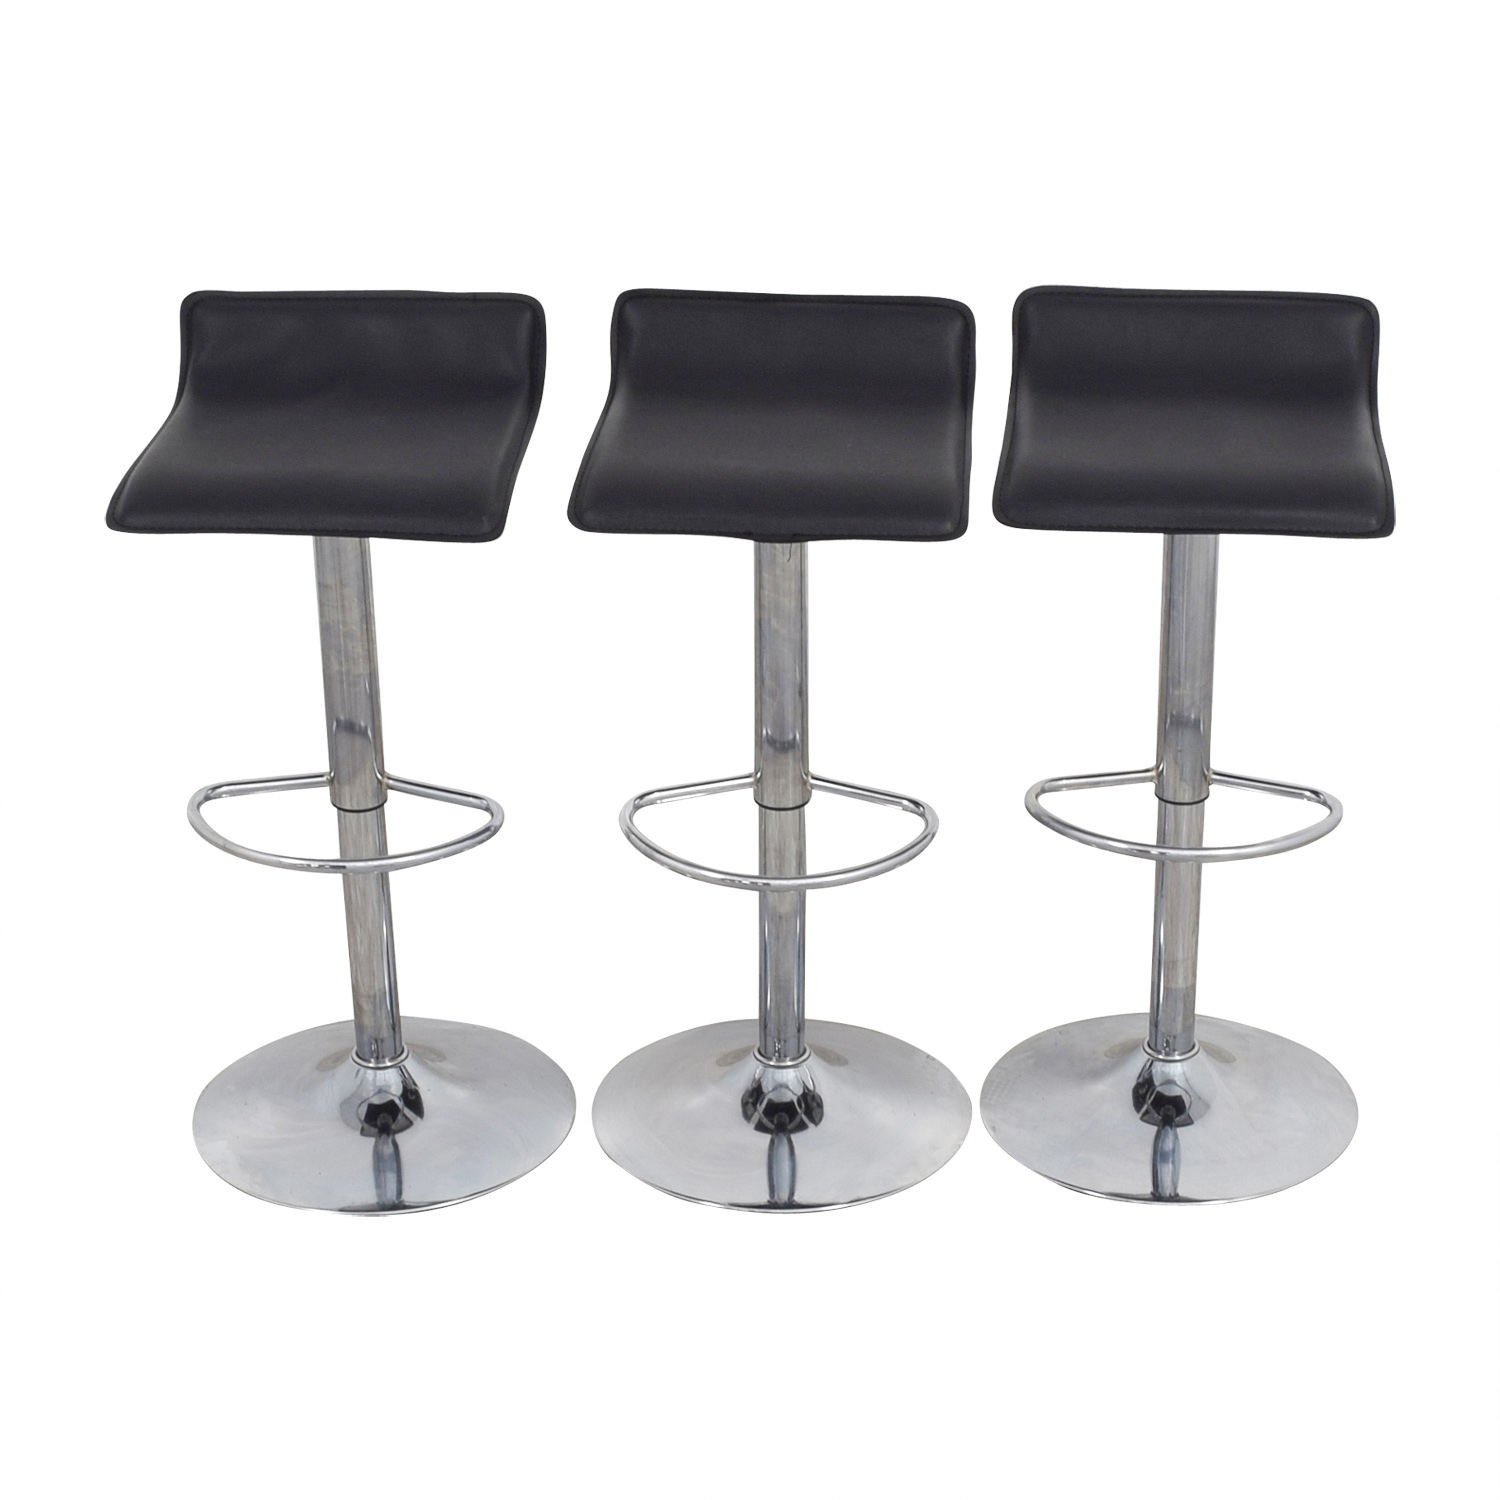 Target Bar Stools ~ Off target black adjustable bar stools chairs